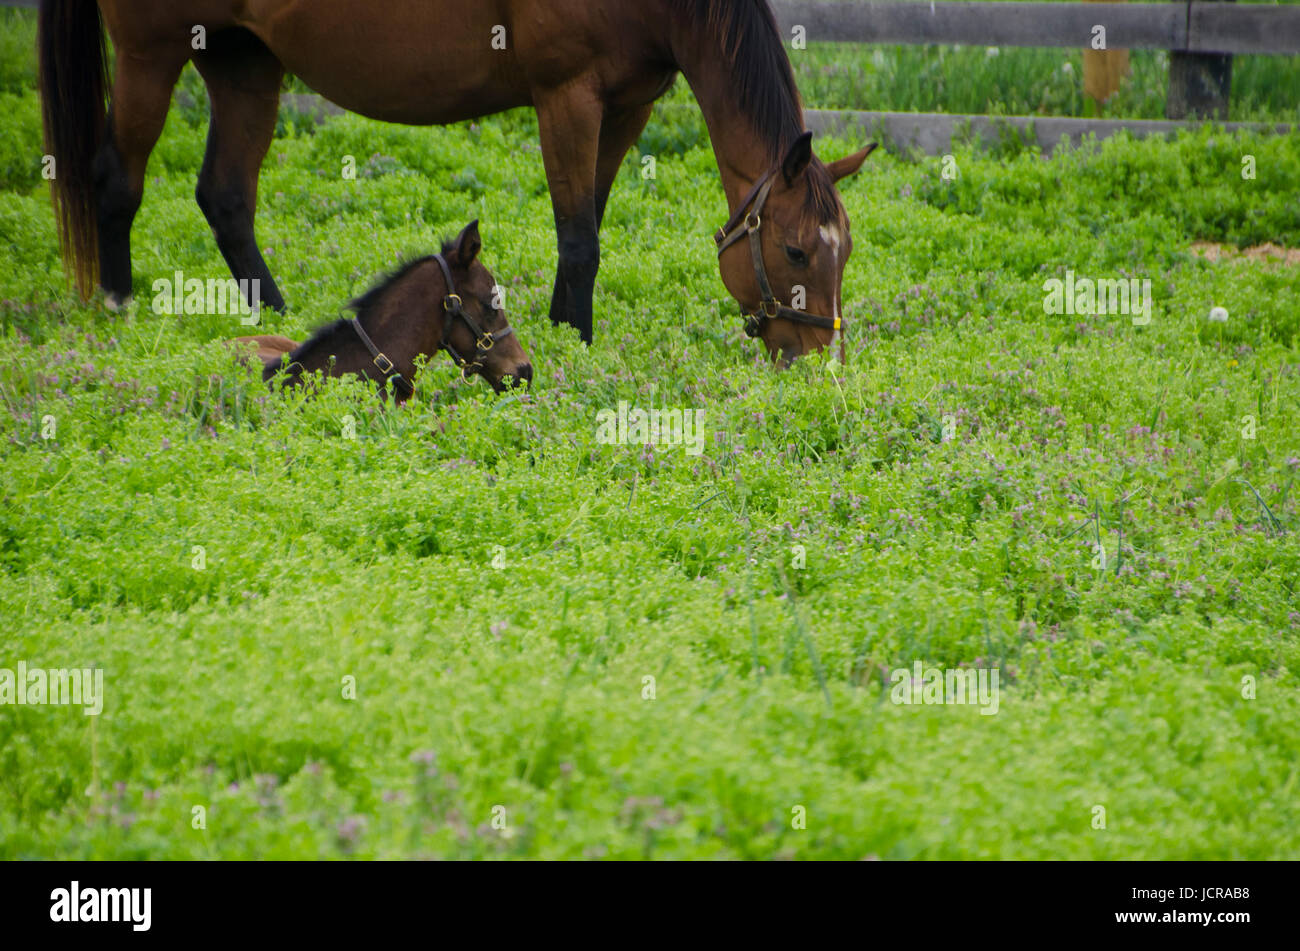 Foal lying in field near mare Lexington KY - Stock Image